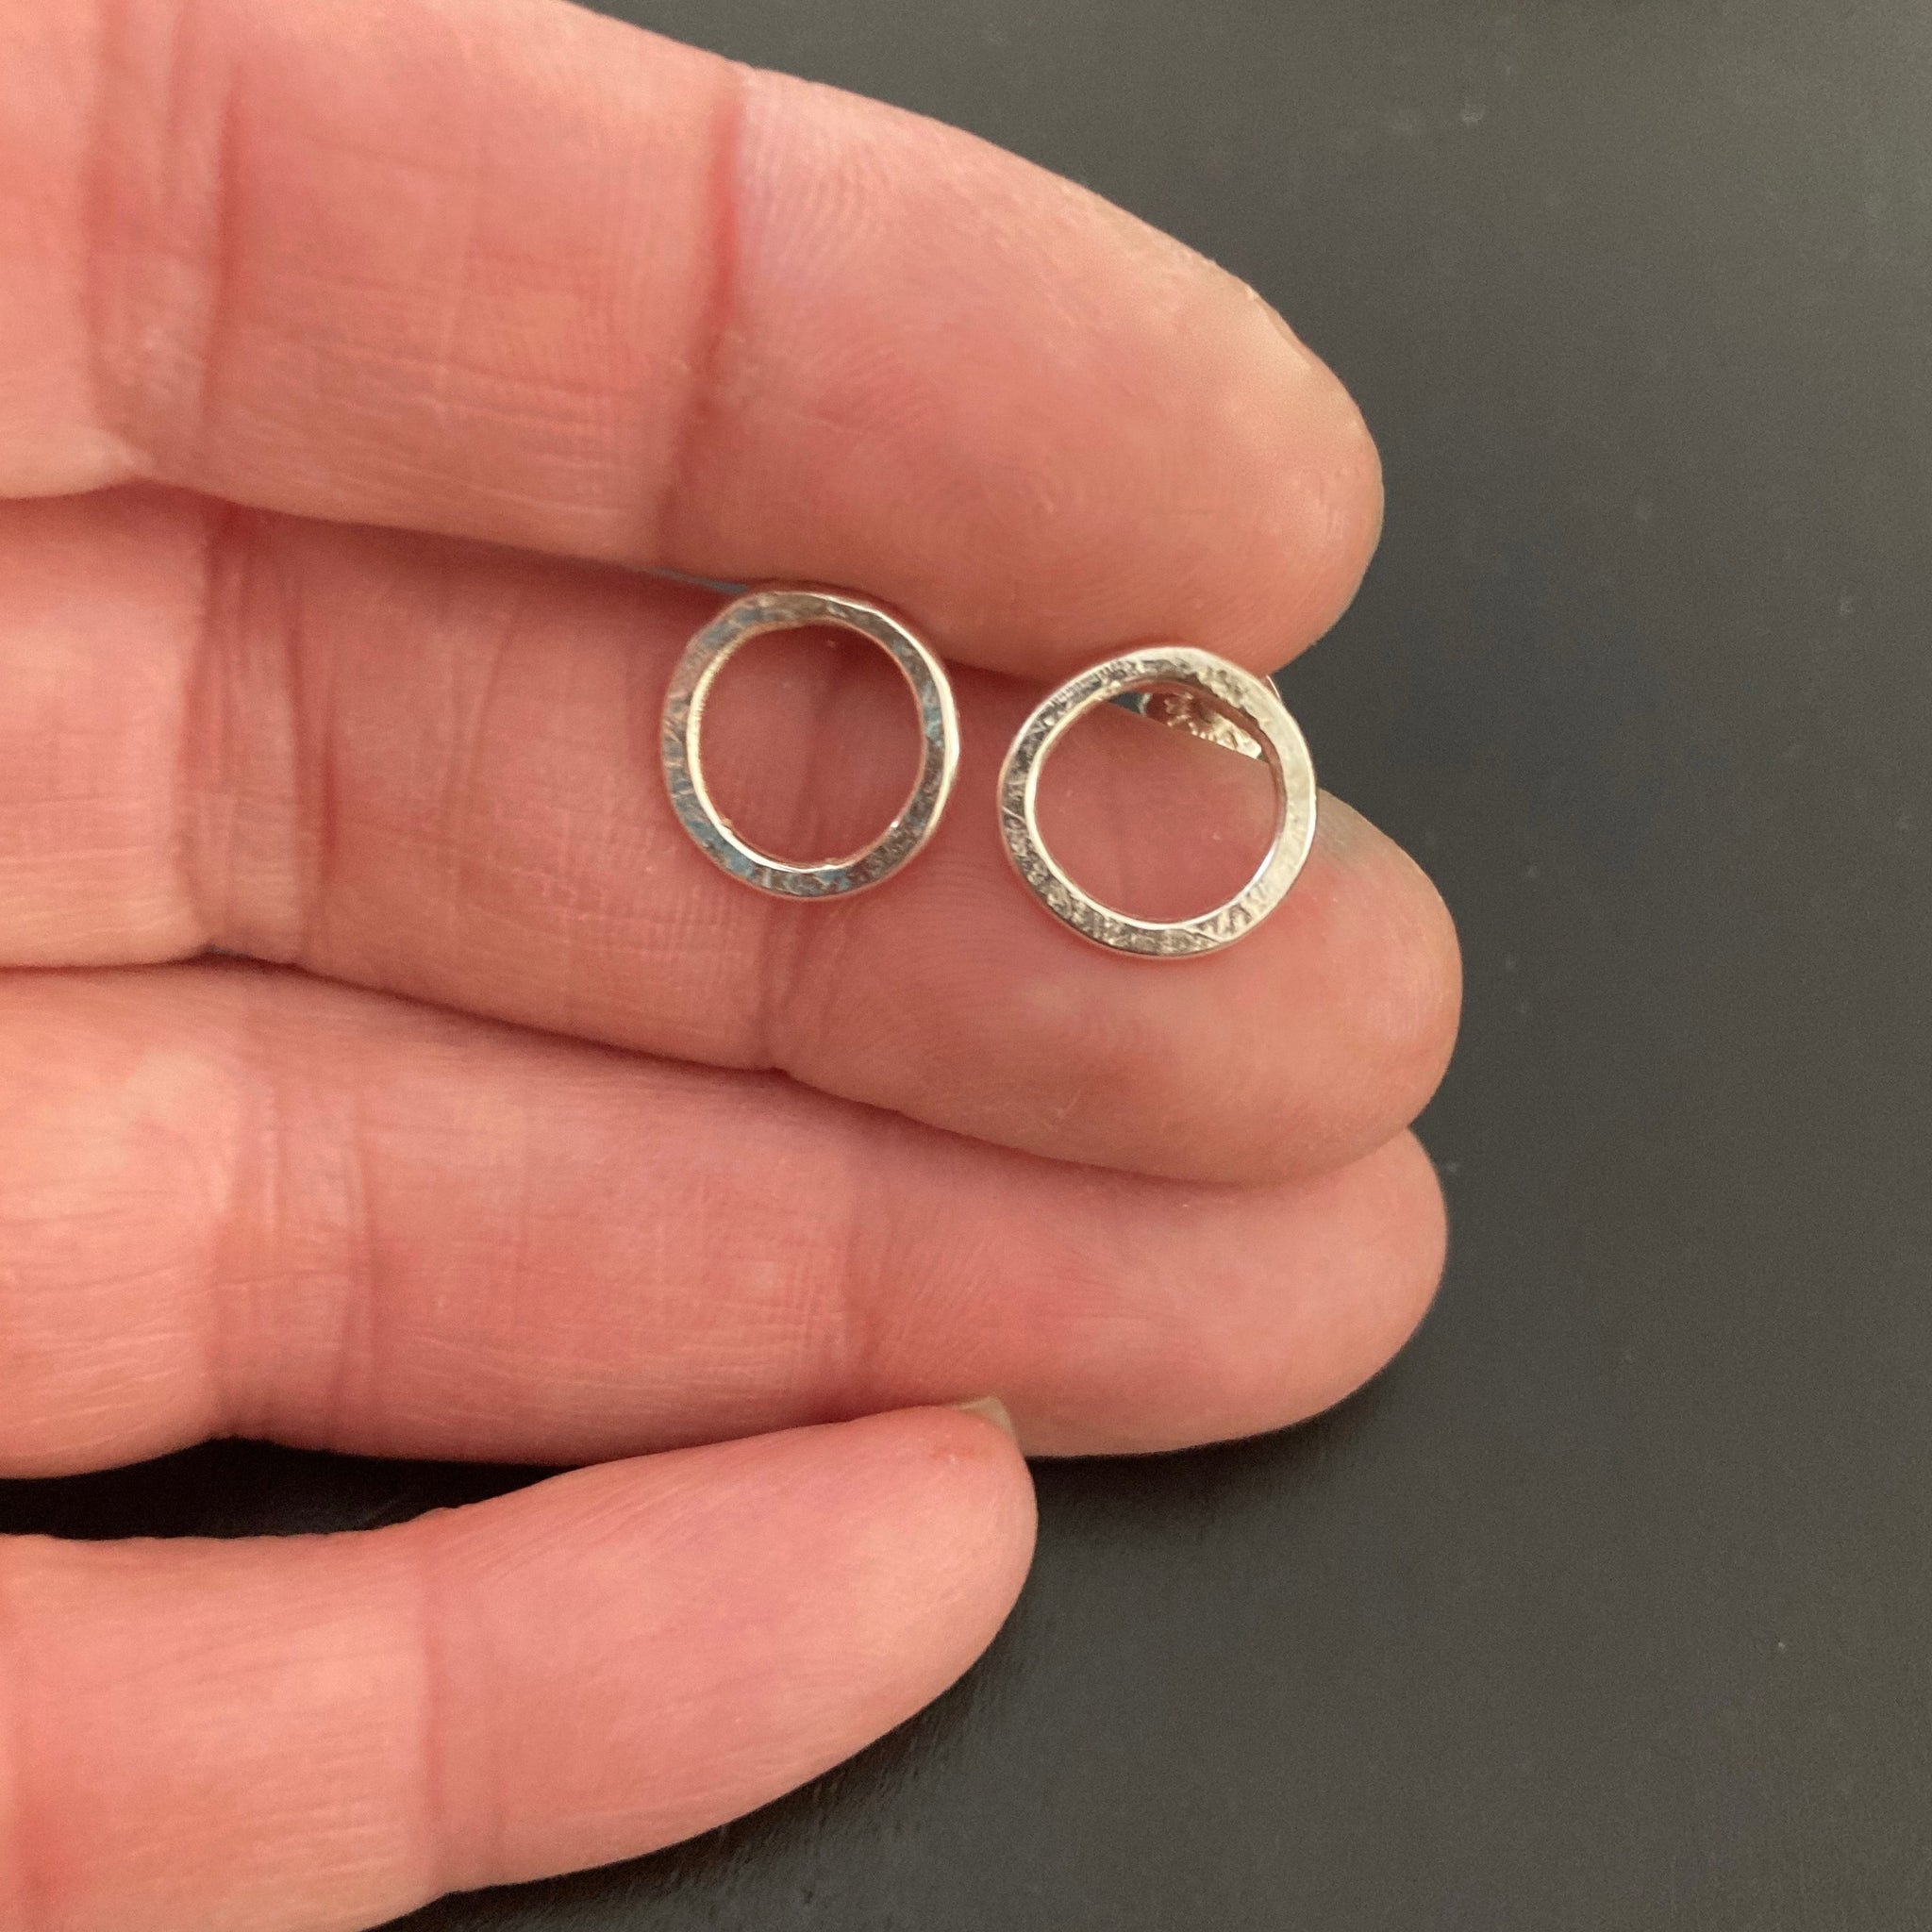 Small Silver Circle Post earrings shown in hand